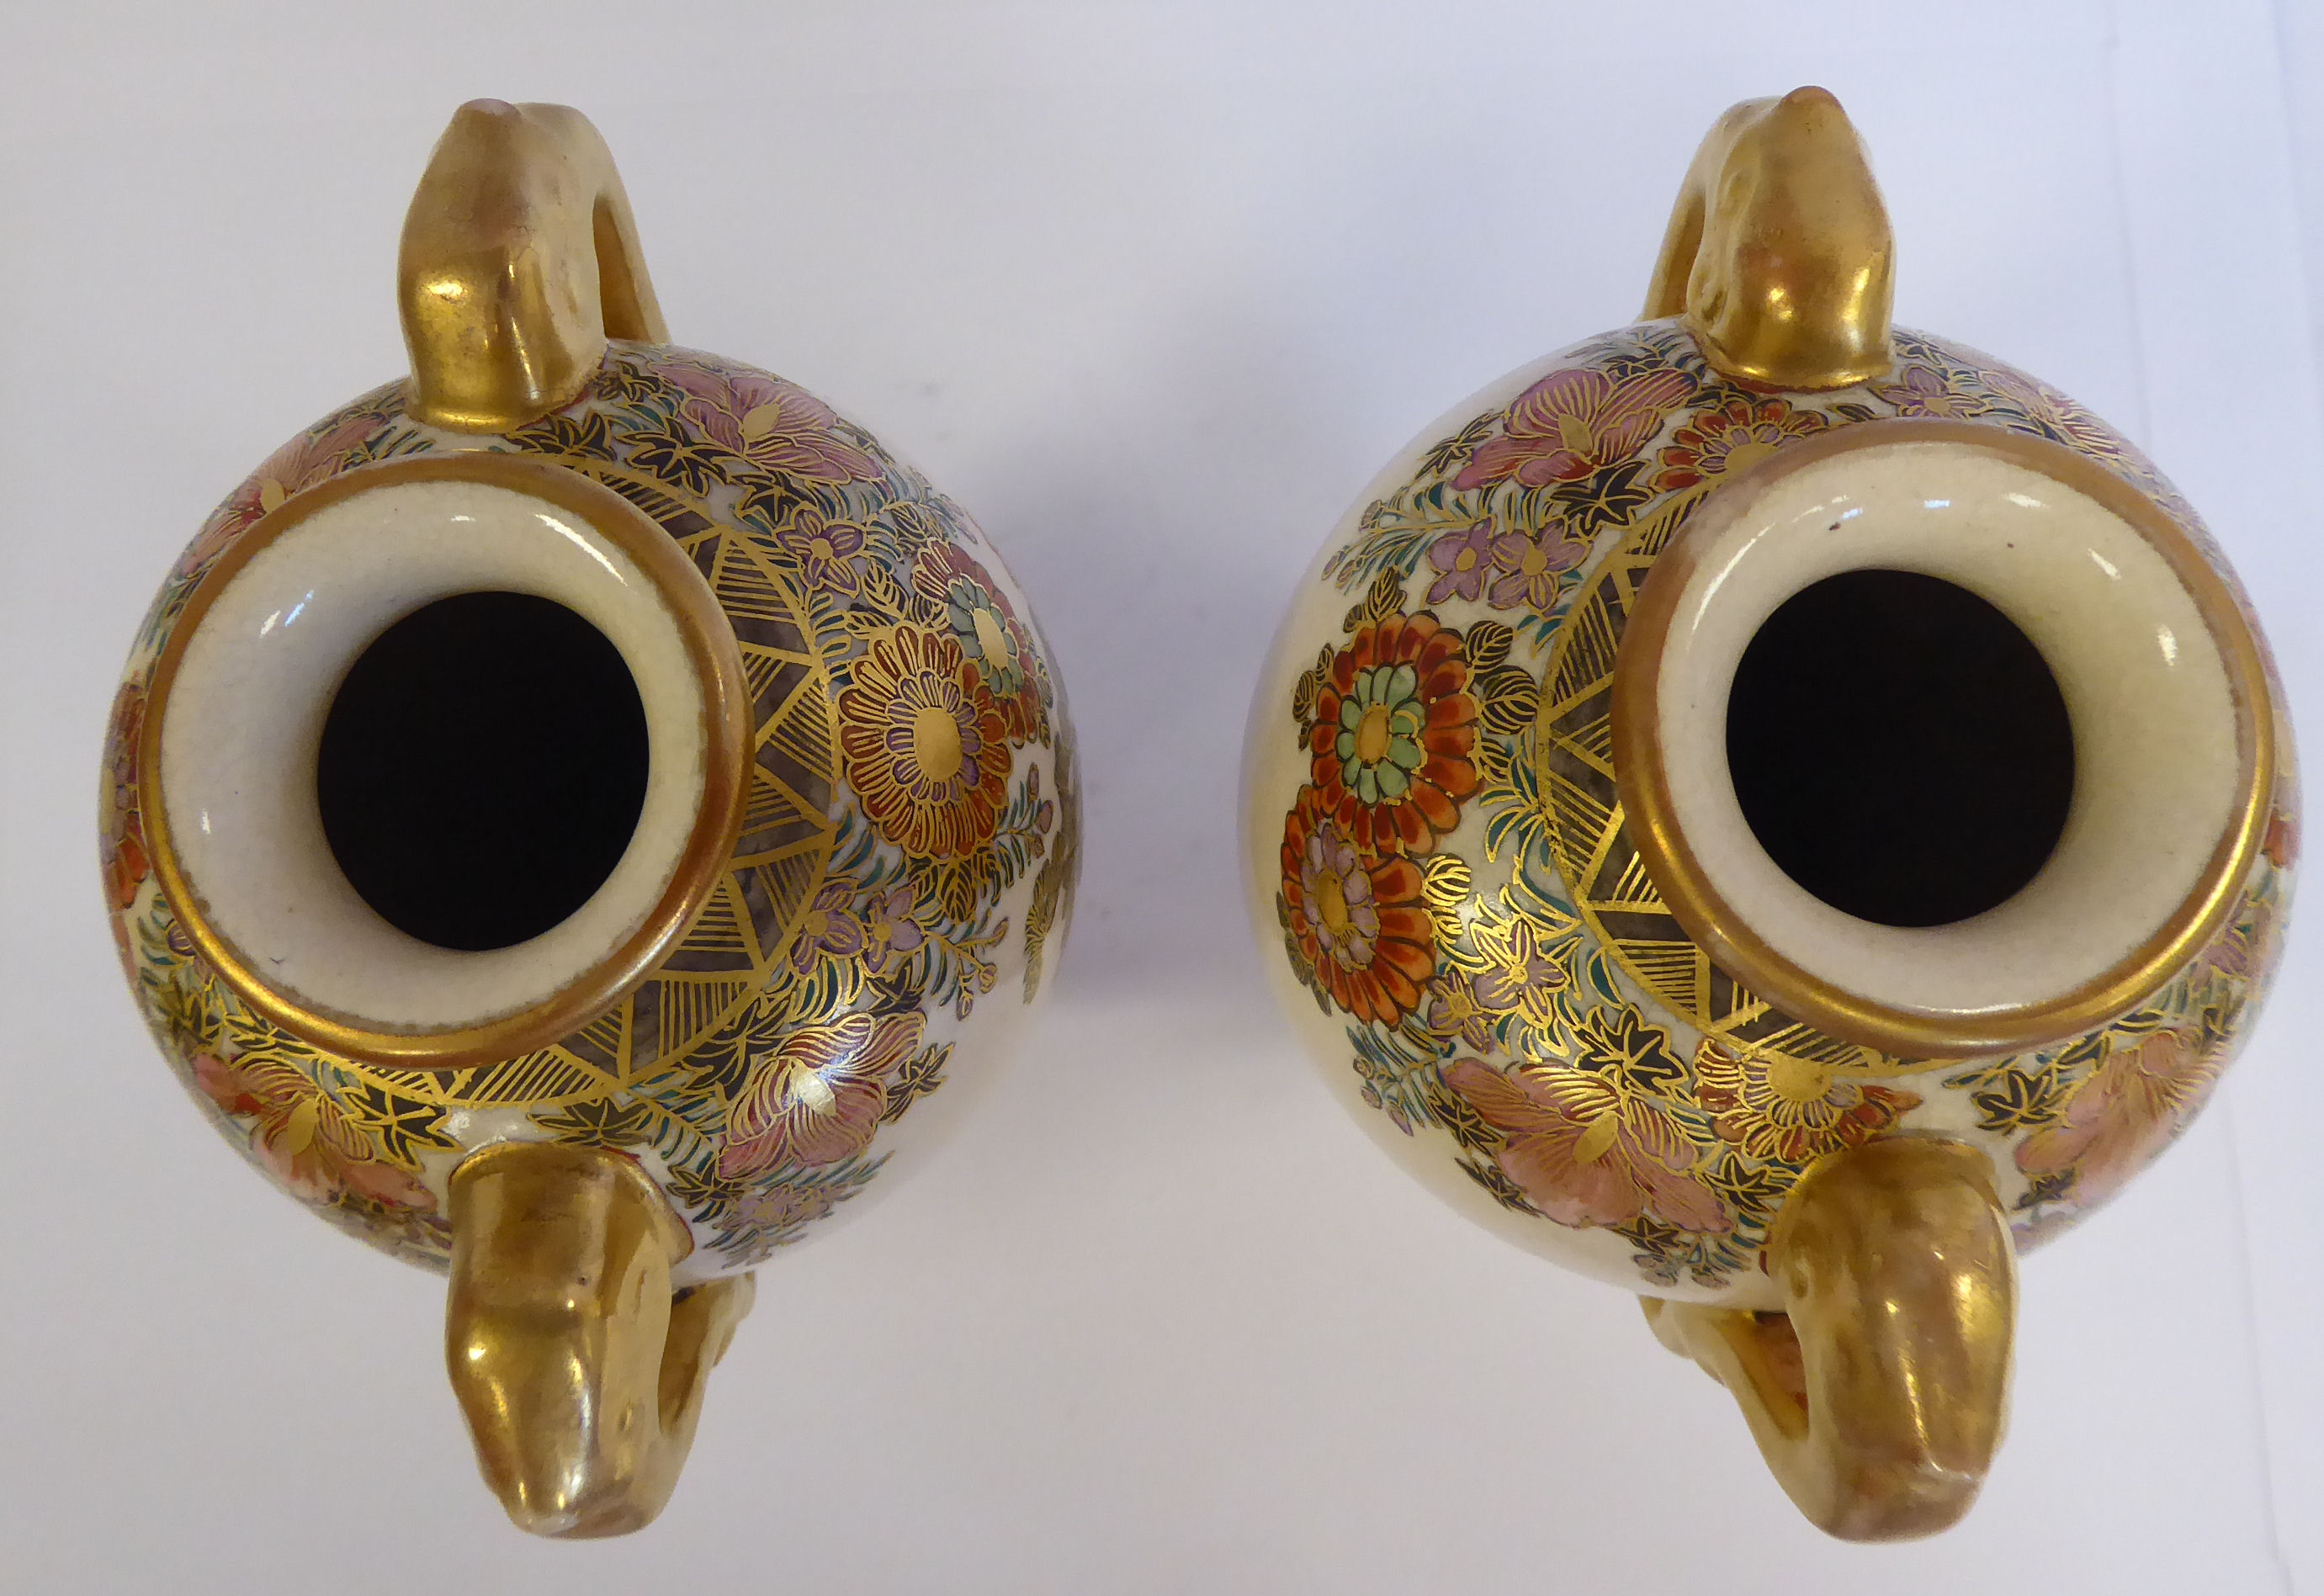 Lot 11 - A pair of 20thC Satsuma gilded earthenware baluster shaped vases with opposing, moulded handles,